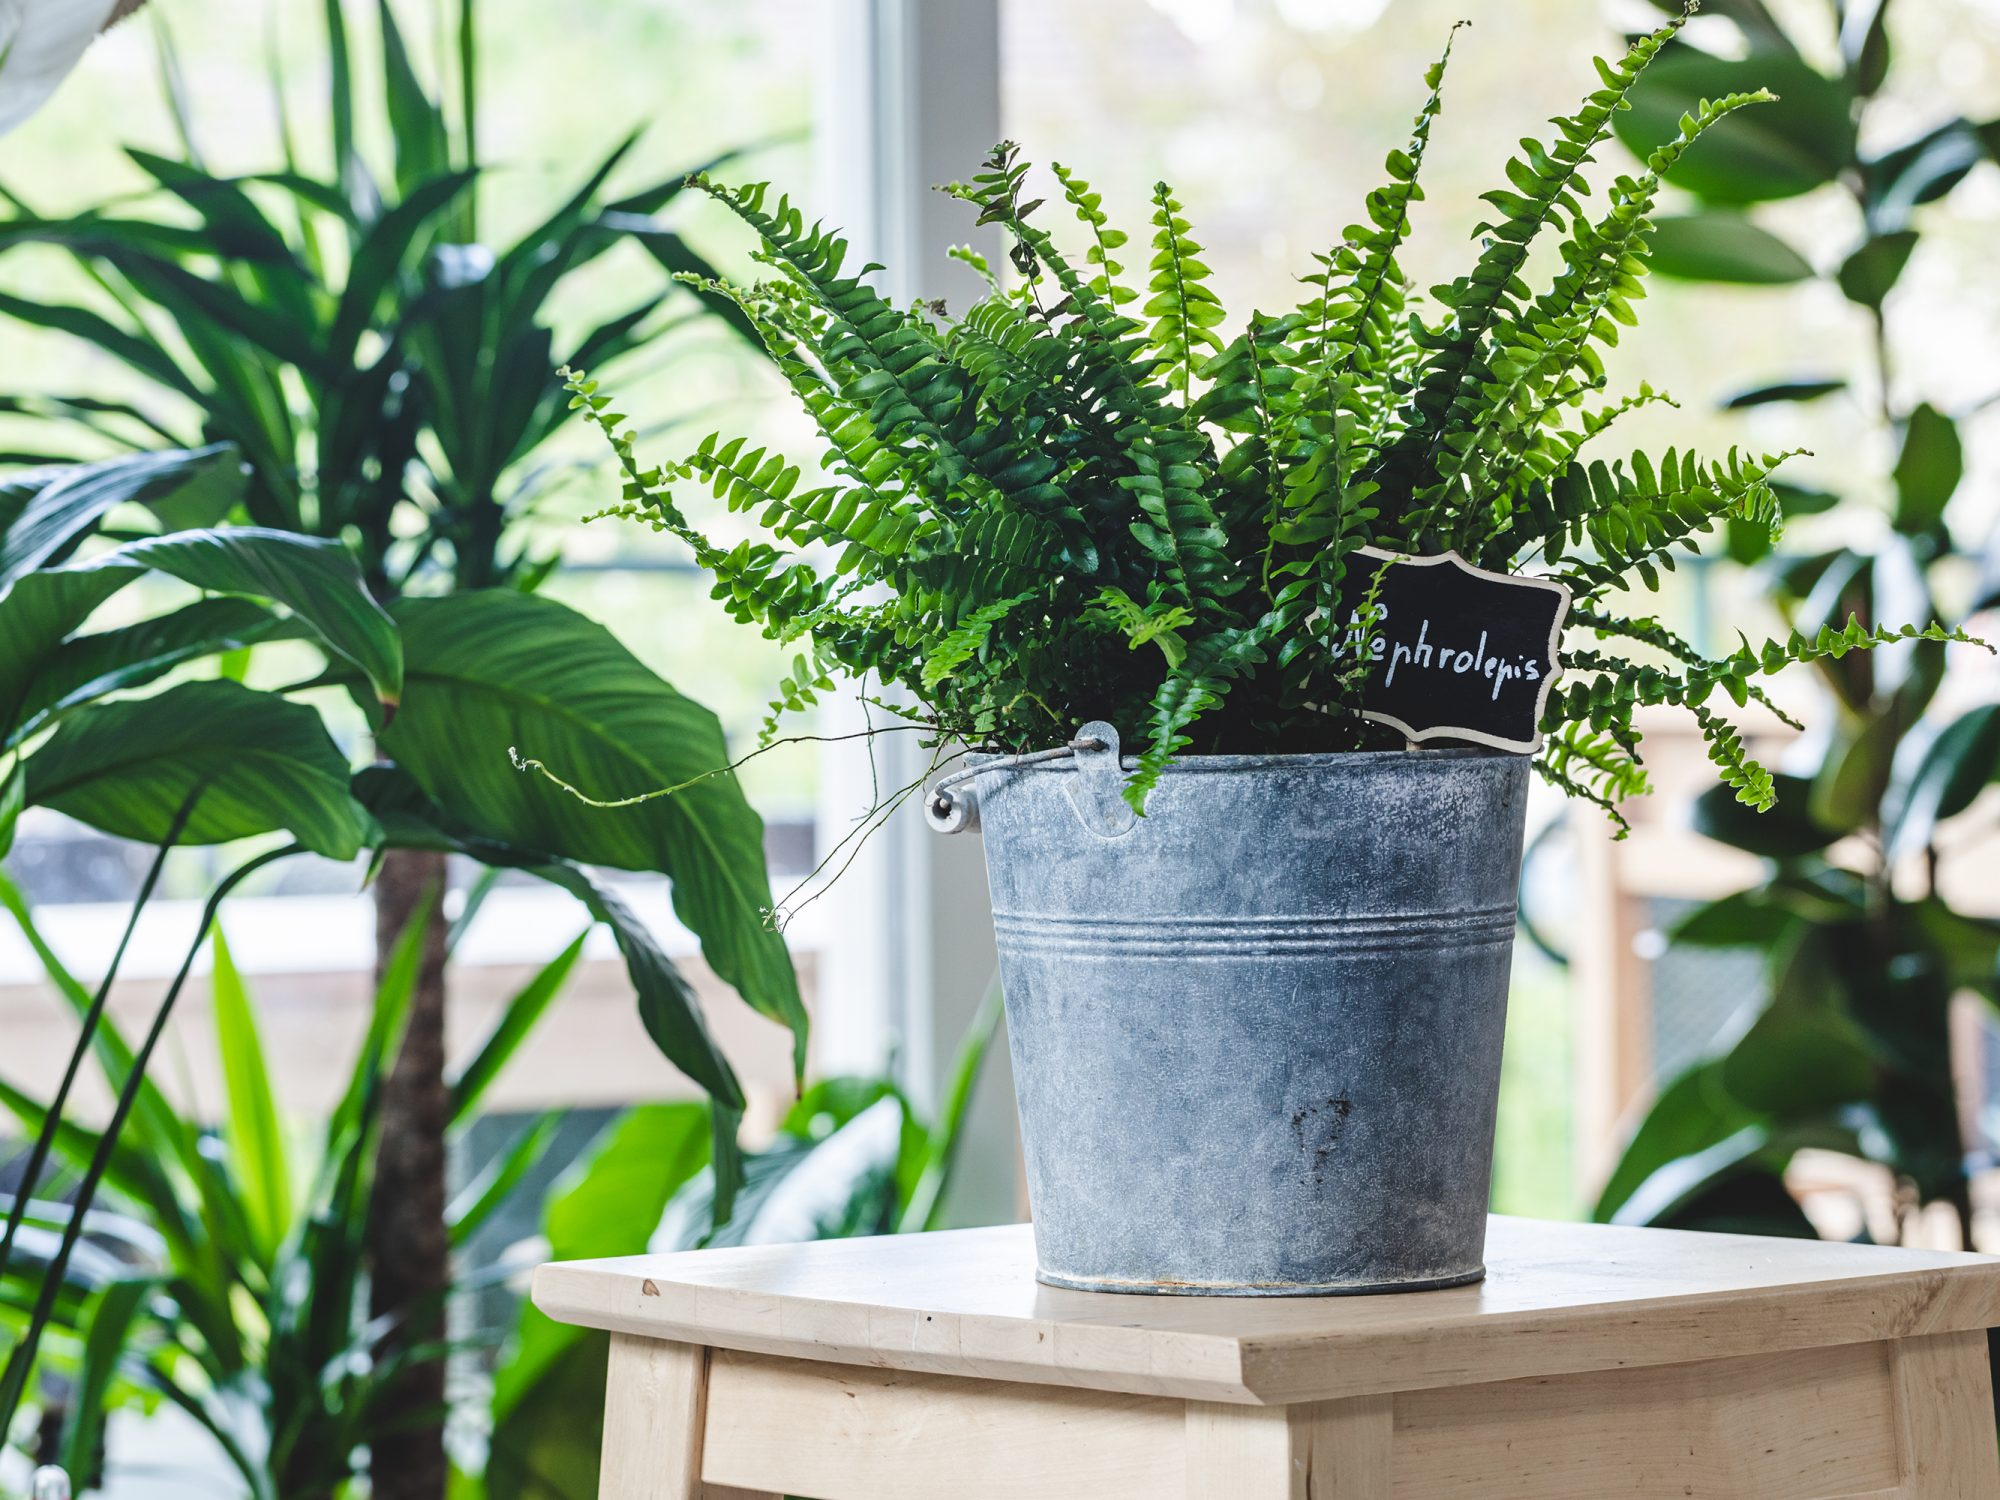 Potted Nephrolepis exaltata (Boston fern, Green Lady) on wooden table